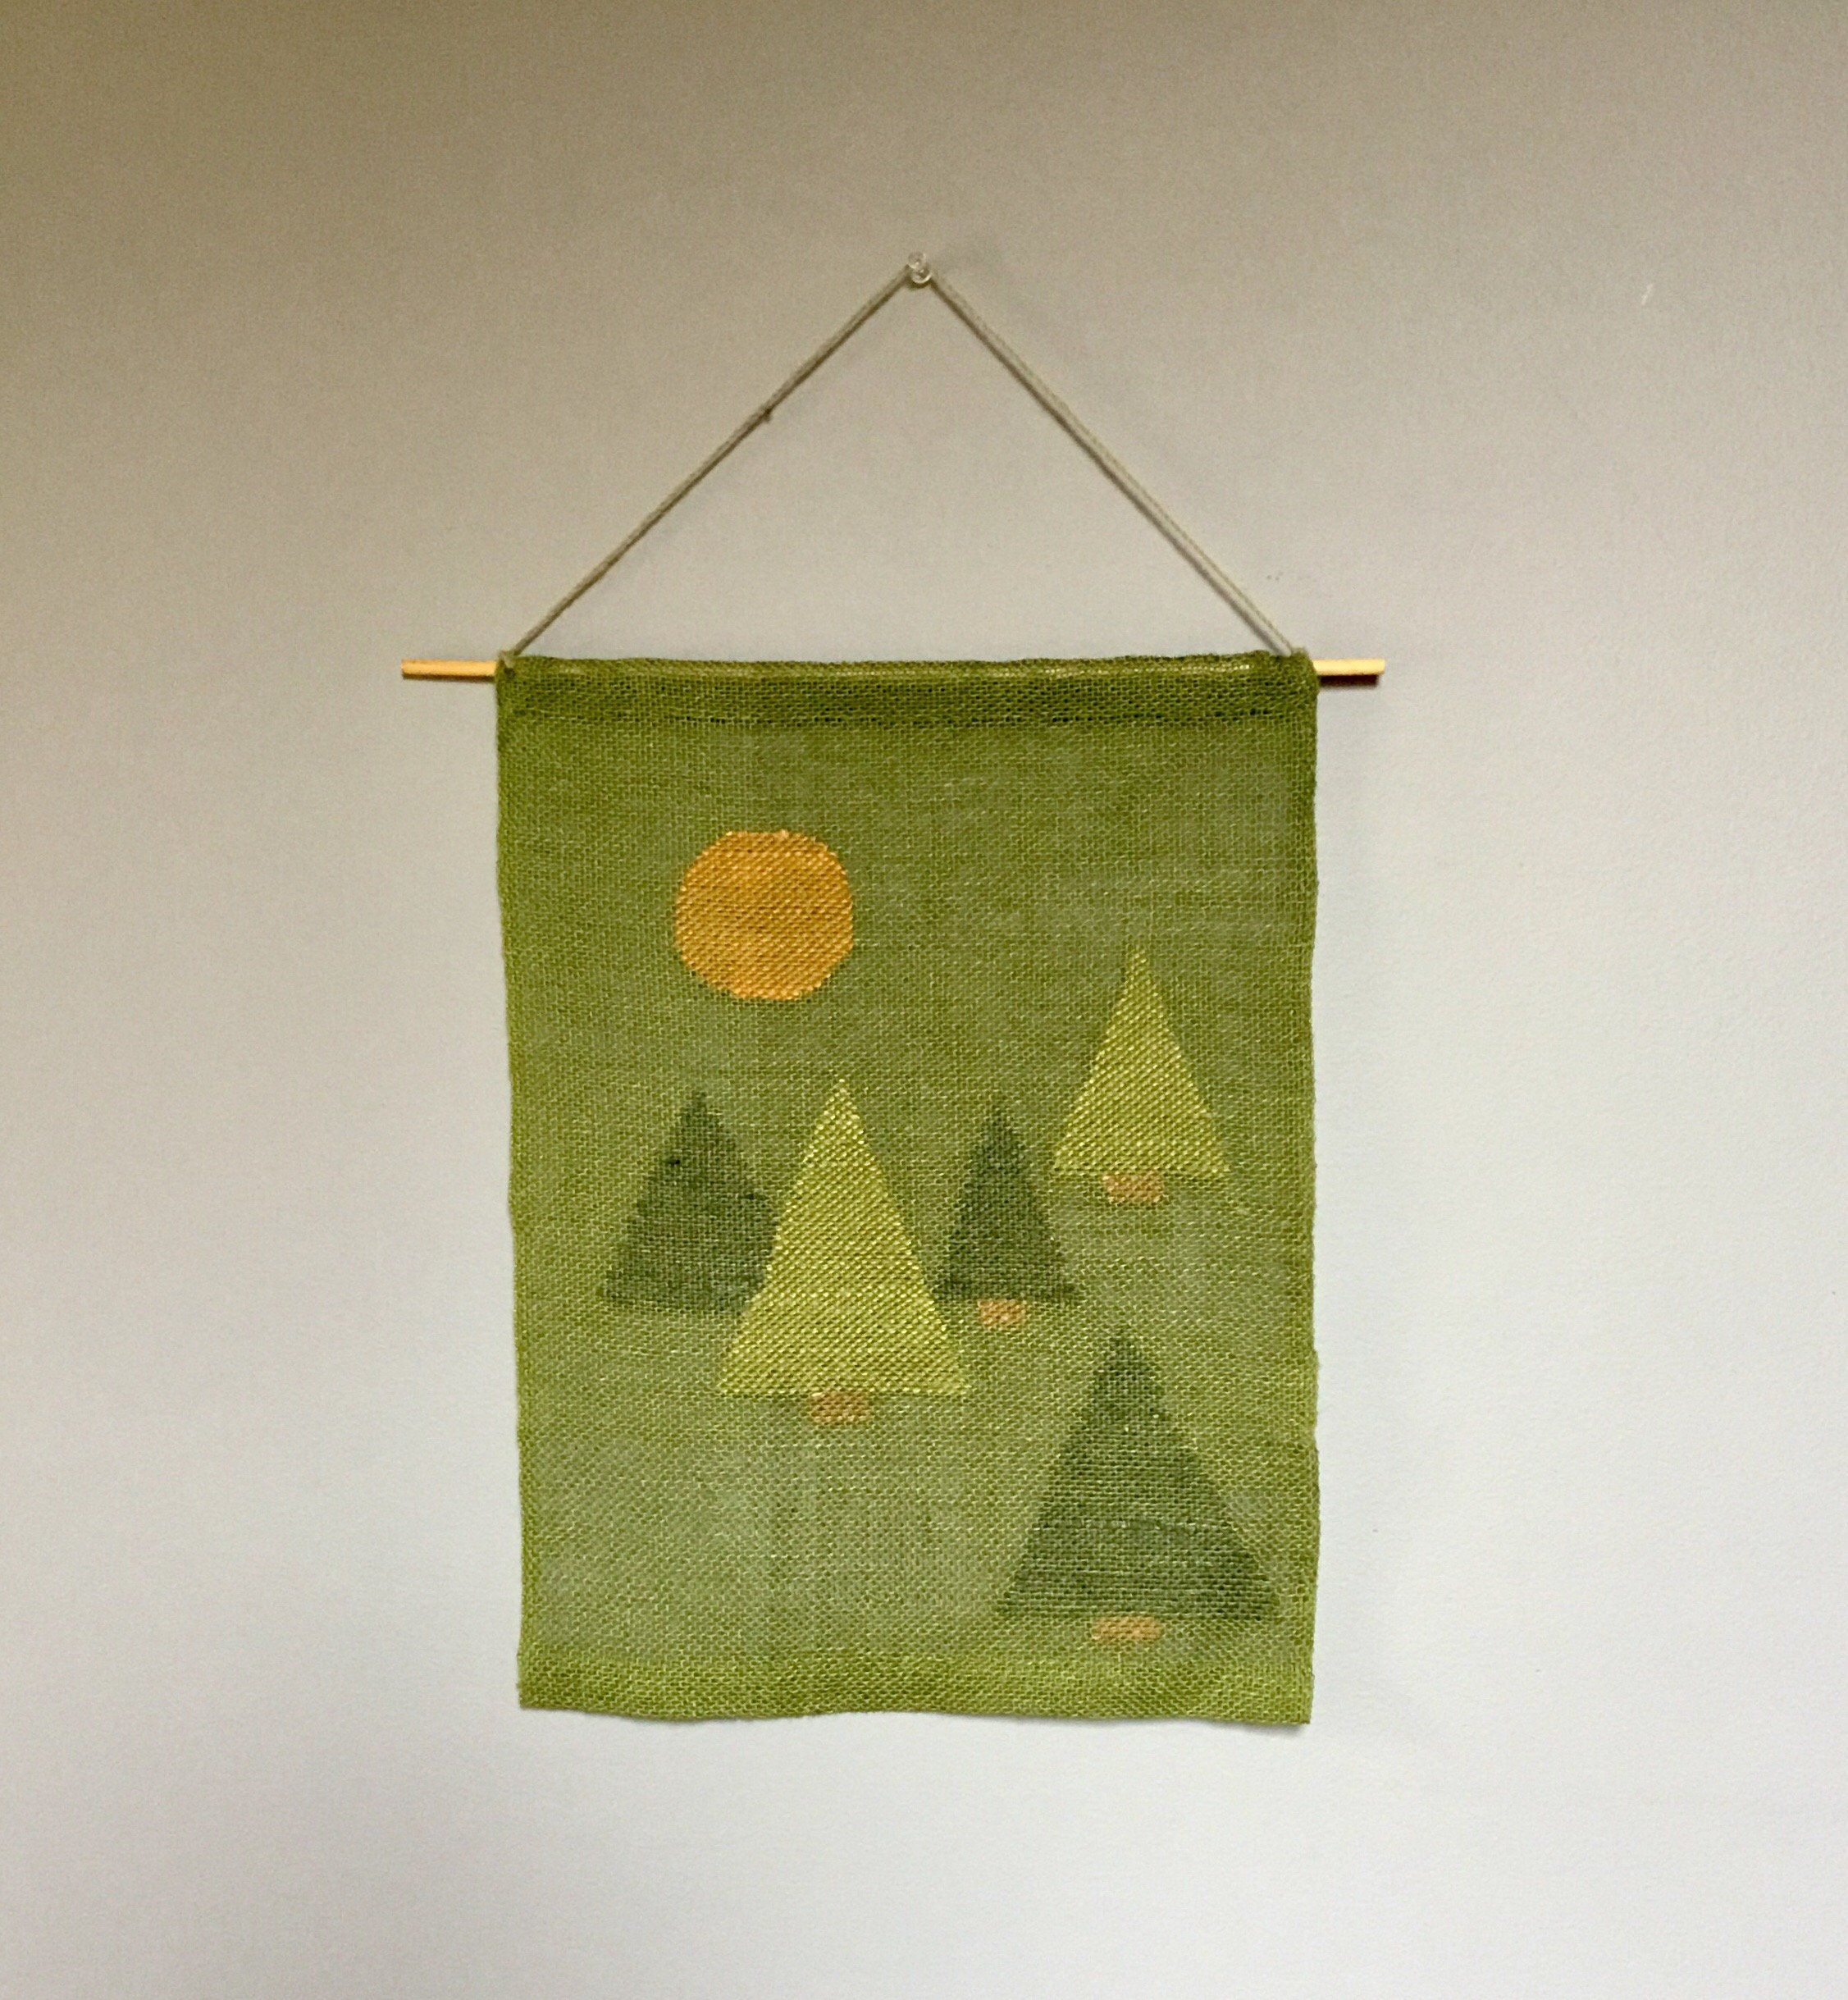 Handwoven, Wall Hanging, Linen, Green, Tree, Transparency, Tapestry, Vintage, Wall